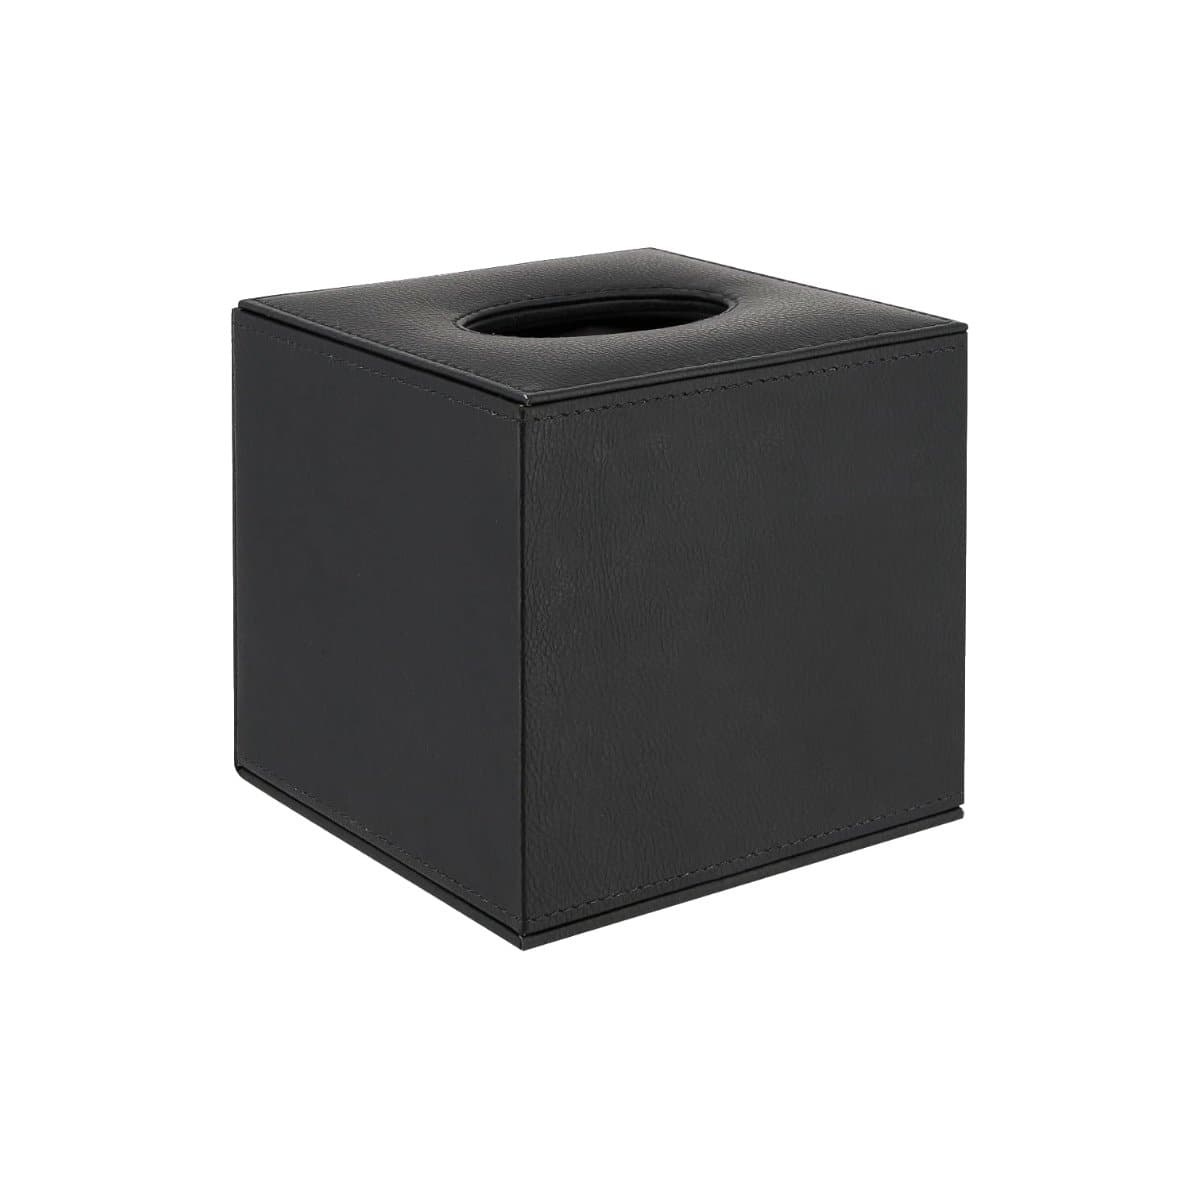 Konrad S. Tissue Box Cube, 13 x 13 x 13cm, PU Leather, Black